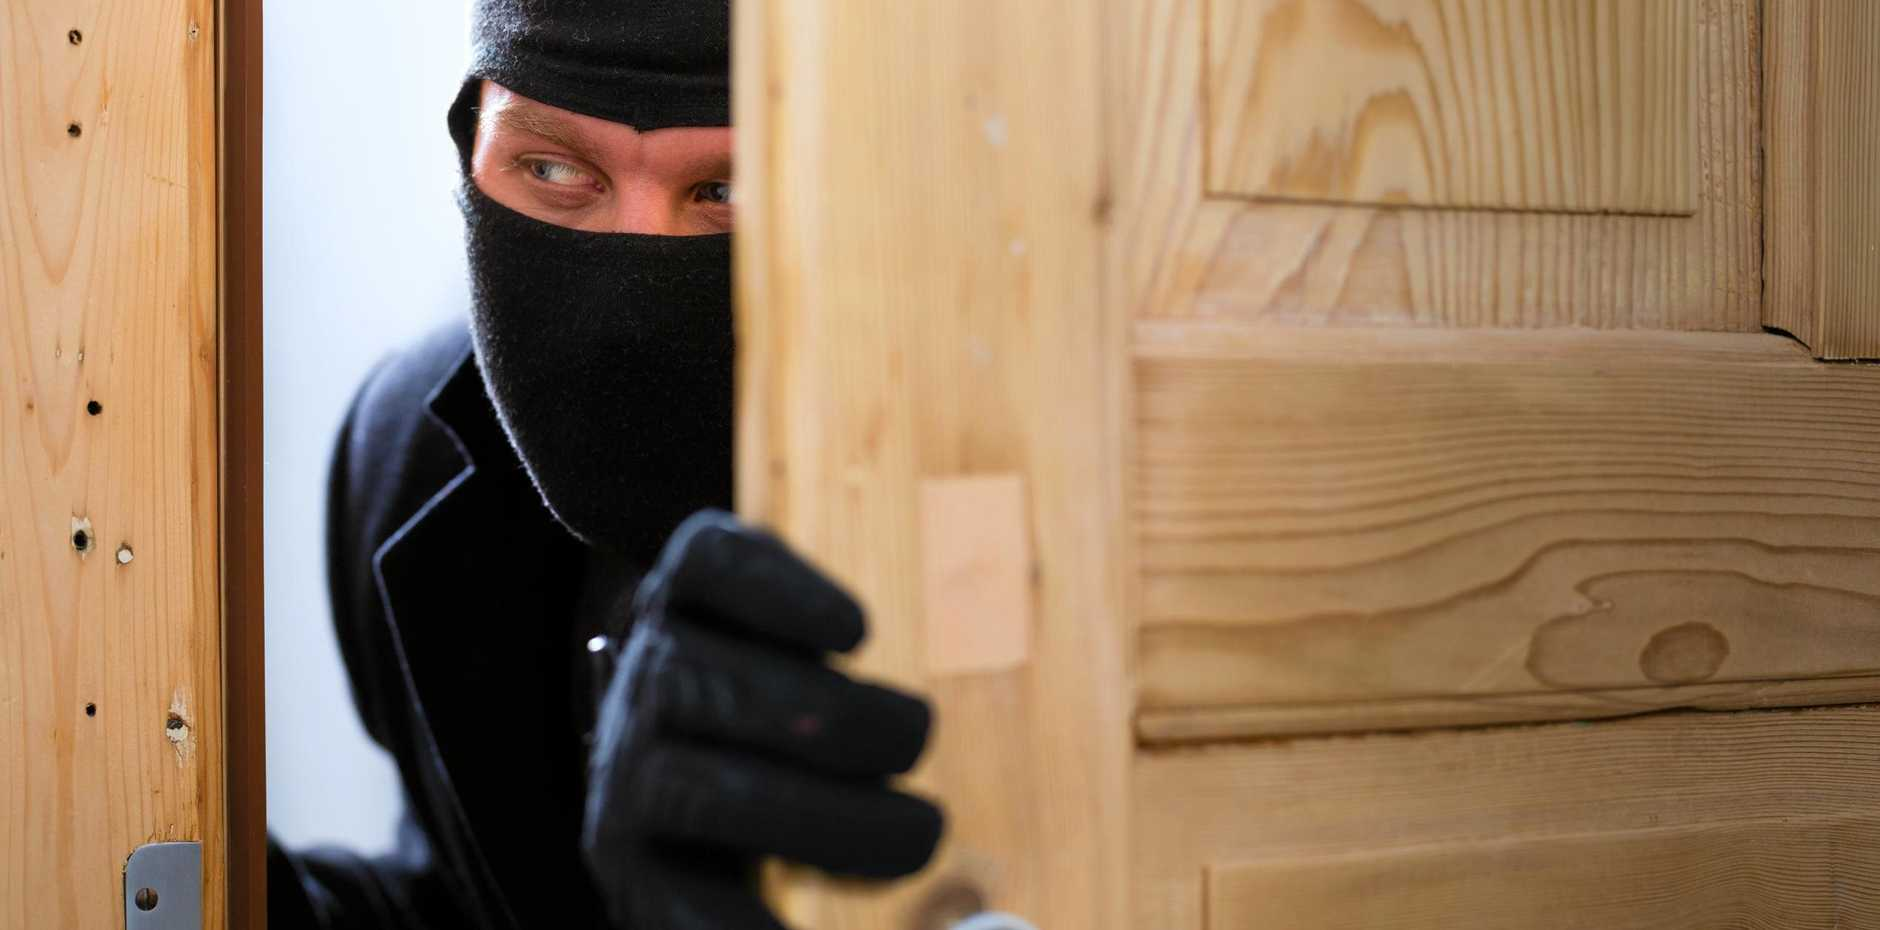 Police urge all homeowners, renters and holidaymakers to ensure doors and windows are locked each night.